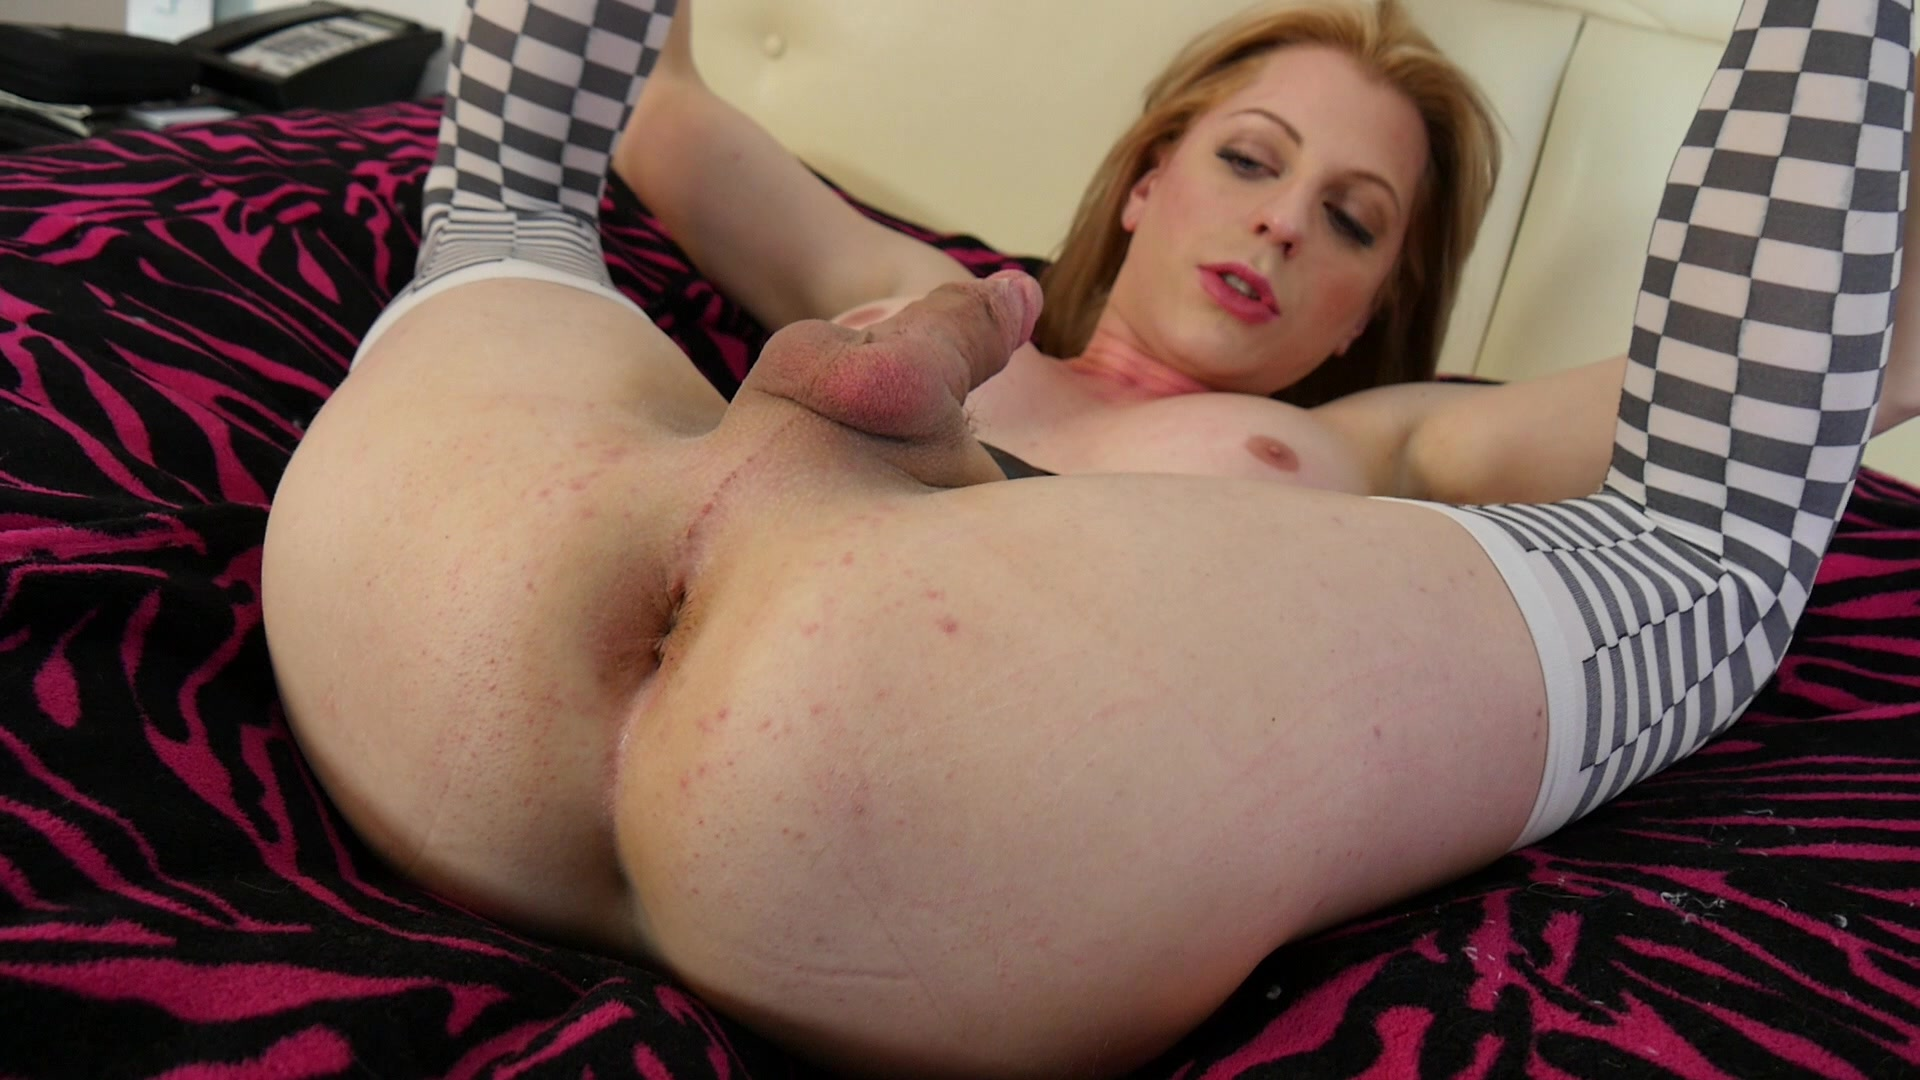 independent, Alexis crystal masturbates with butt plug tail brainy girlie girl